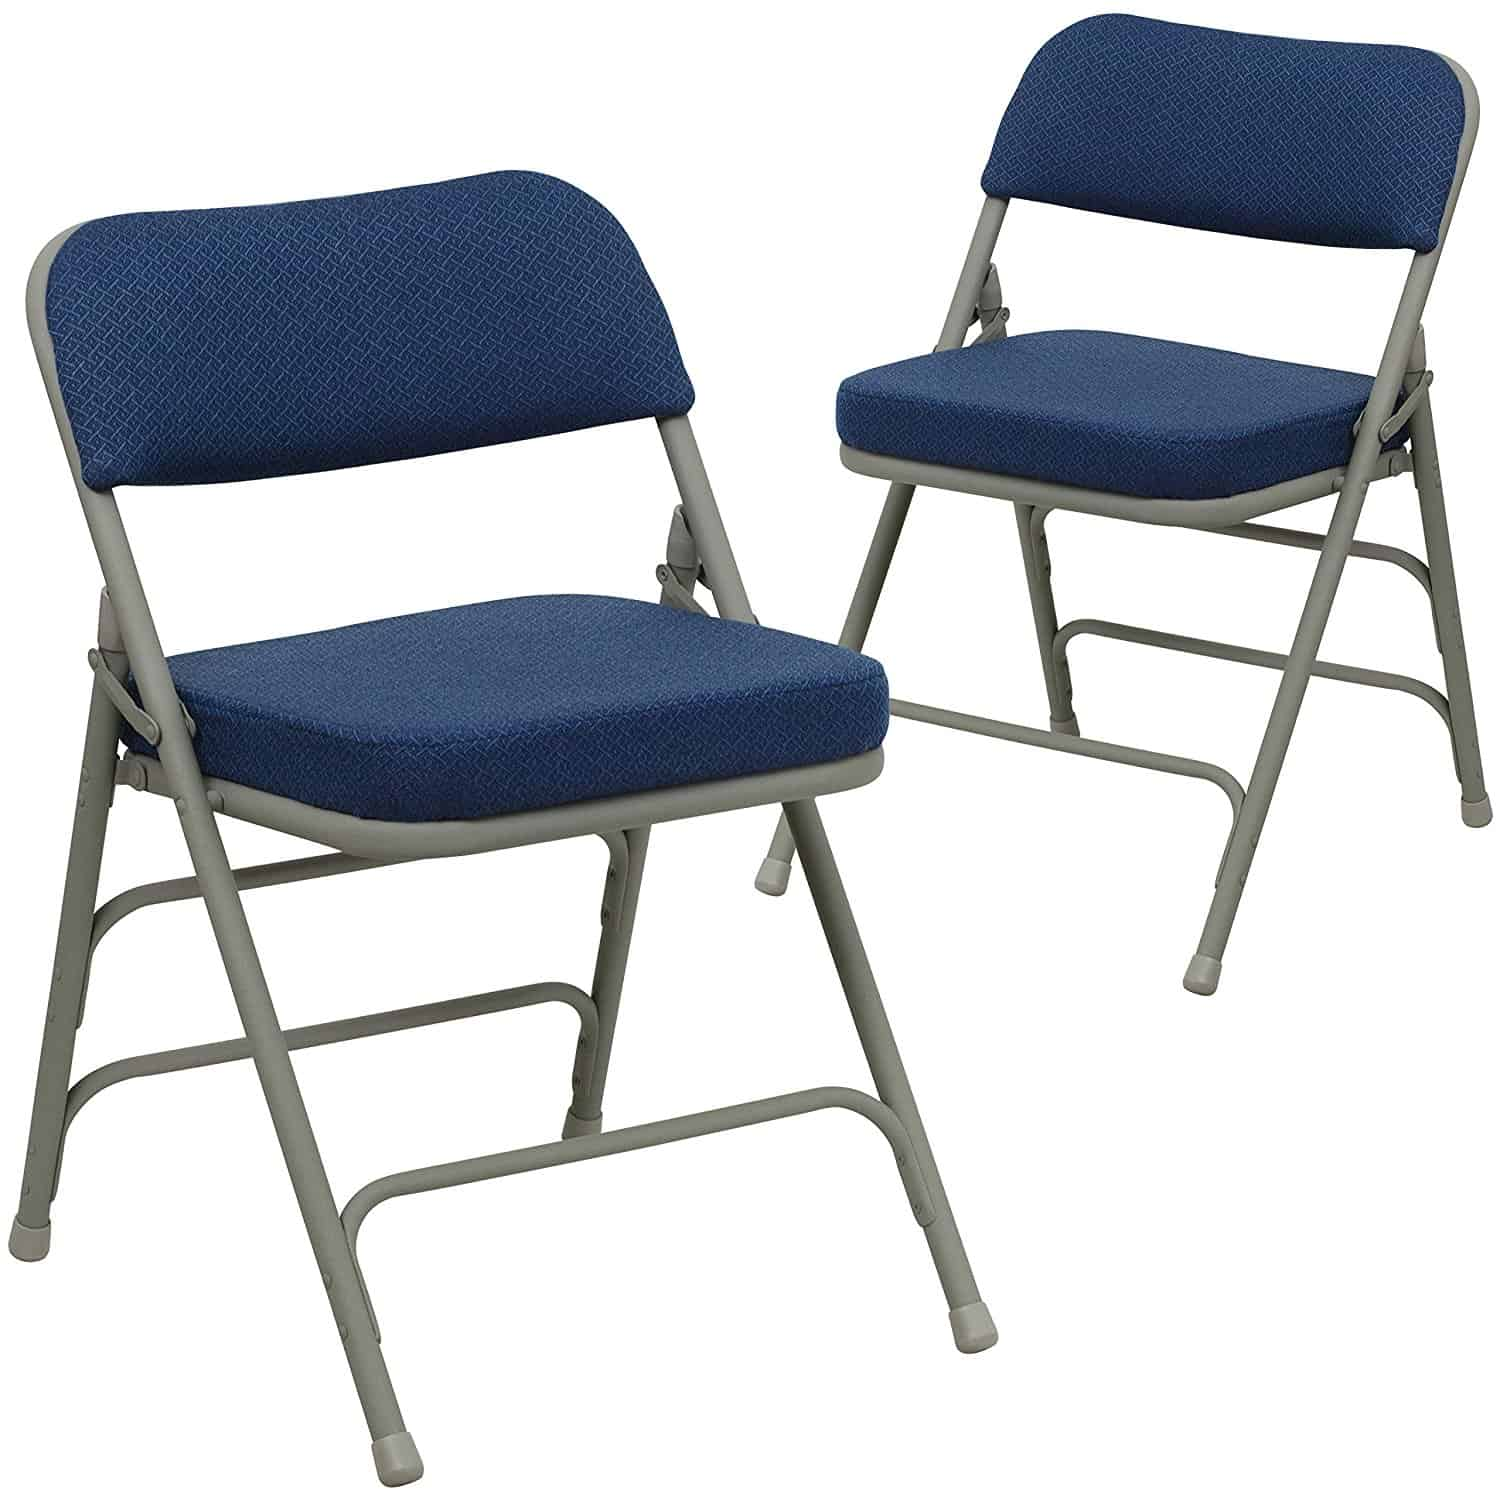 Best Comfortable Folding Chairs for Small Spaces – Vurni